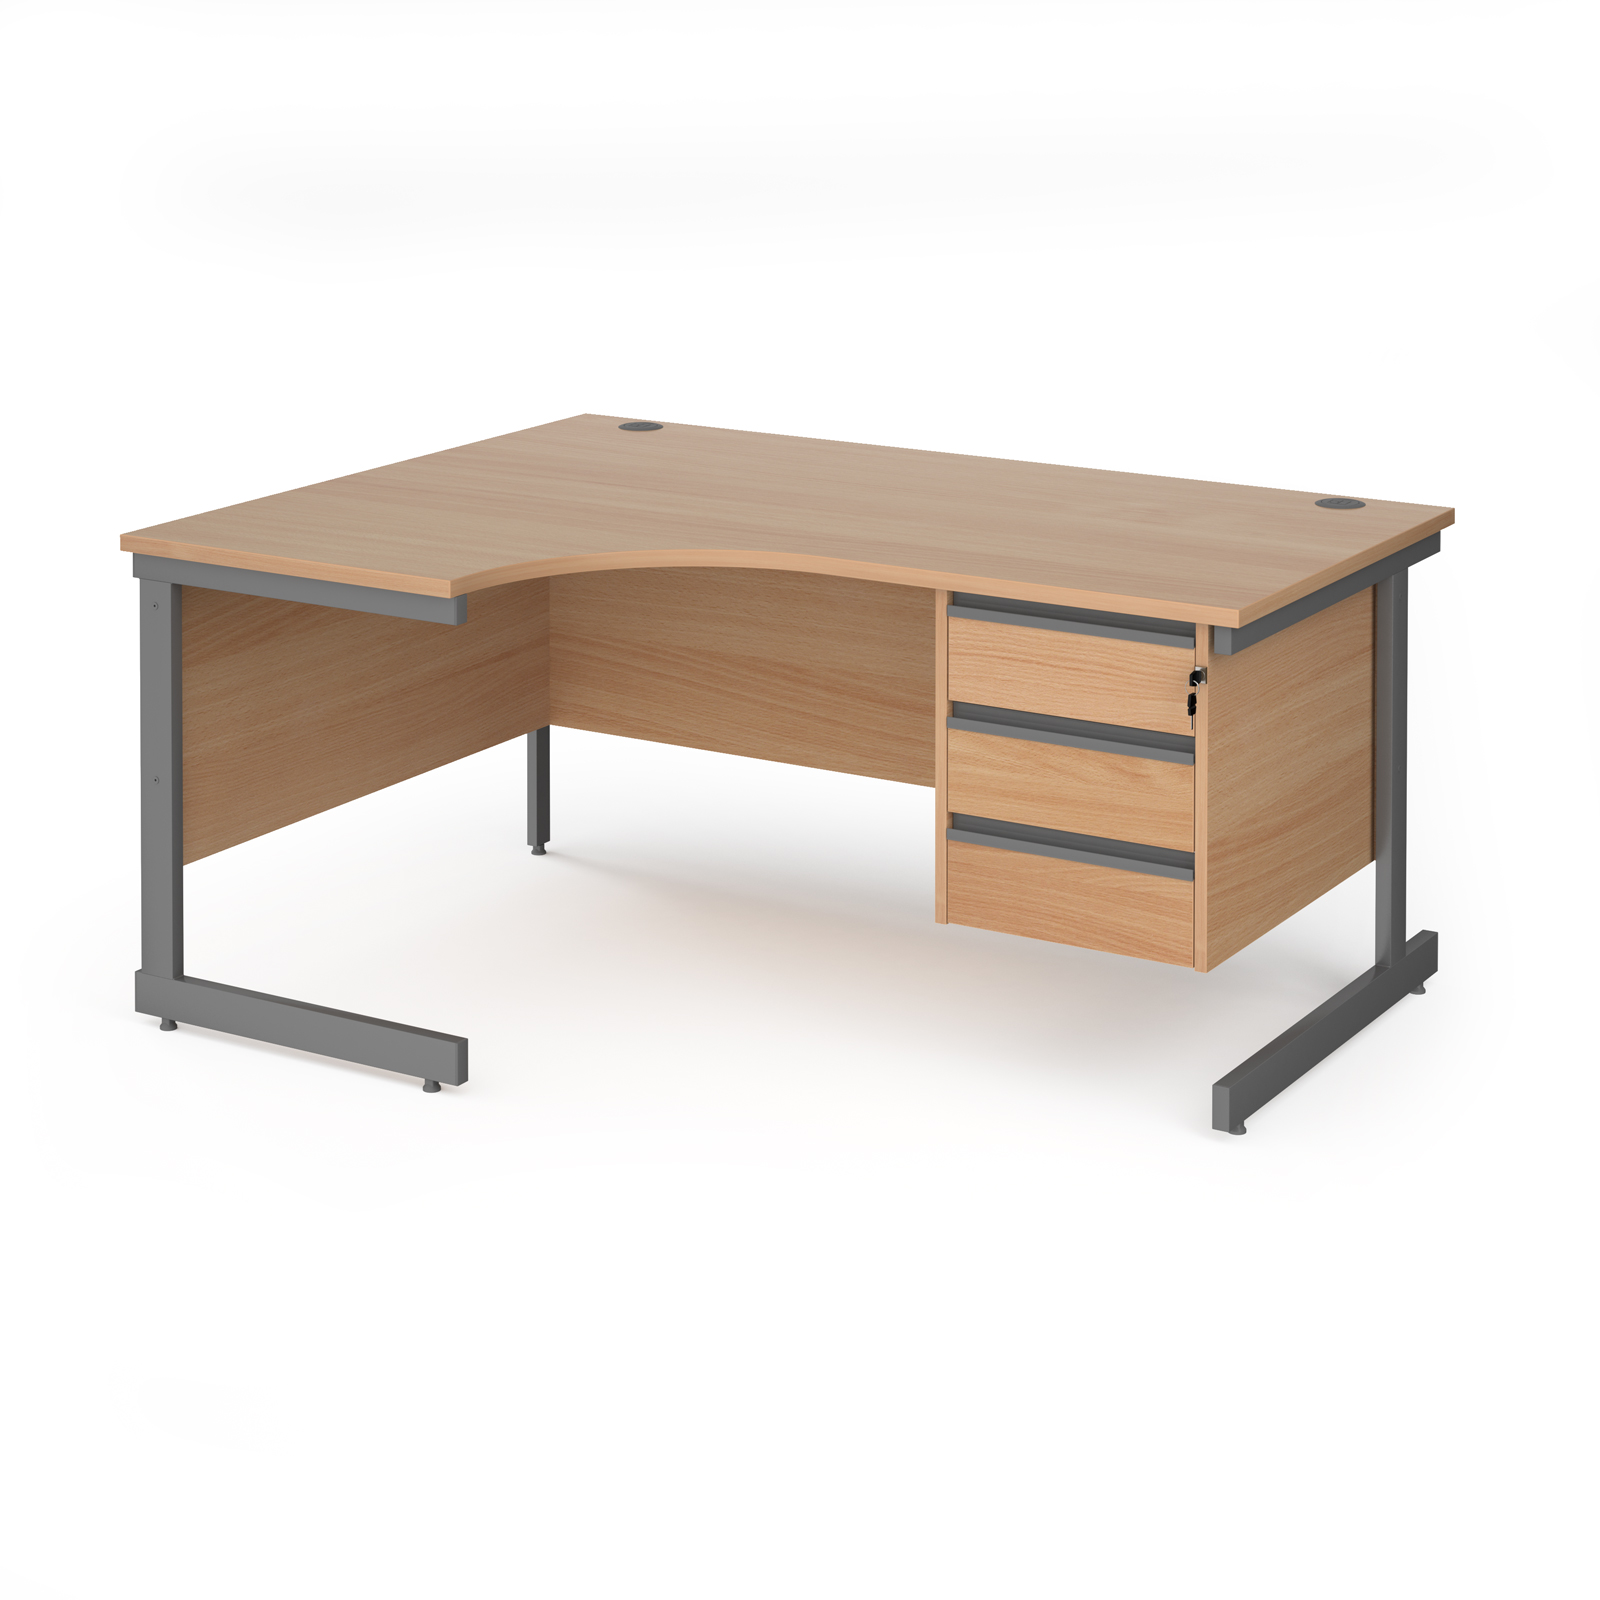 Contract 25 cantilever leg LH ergonomic desk with 3 drawer ped